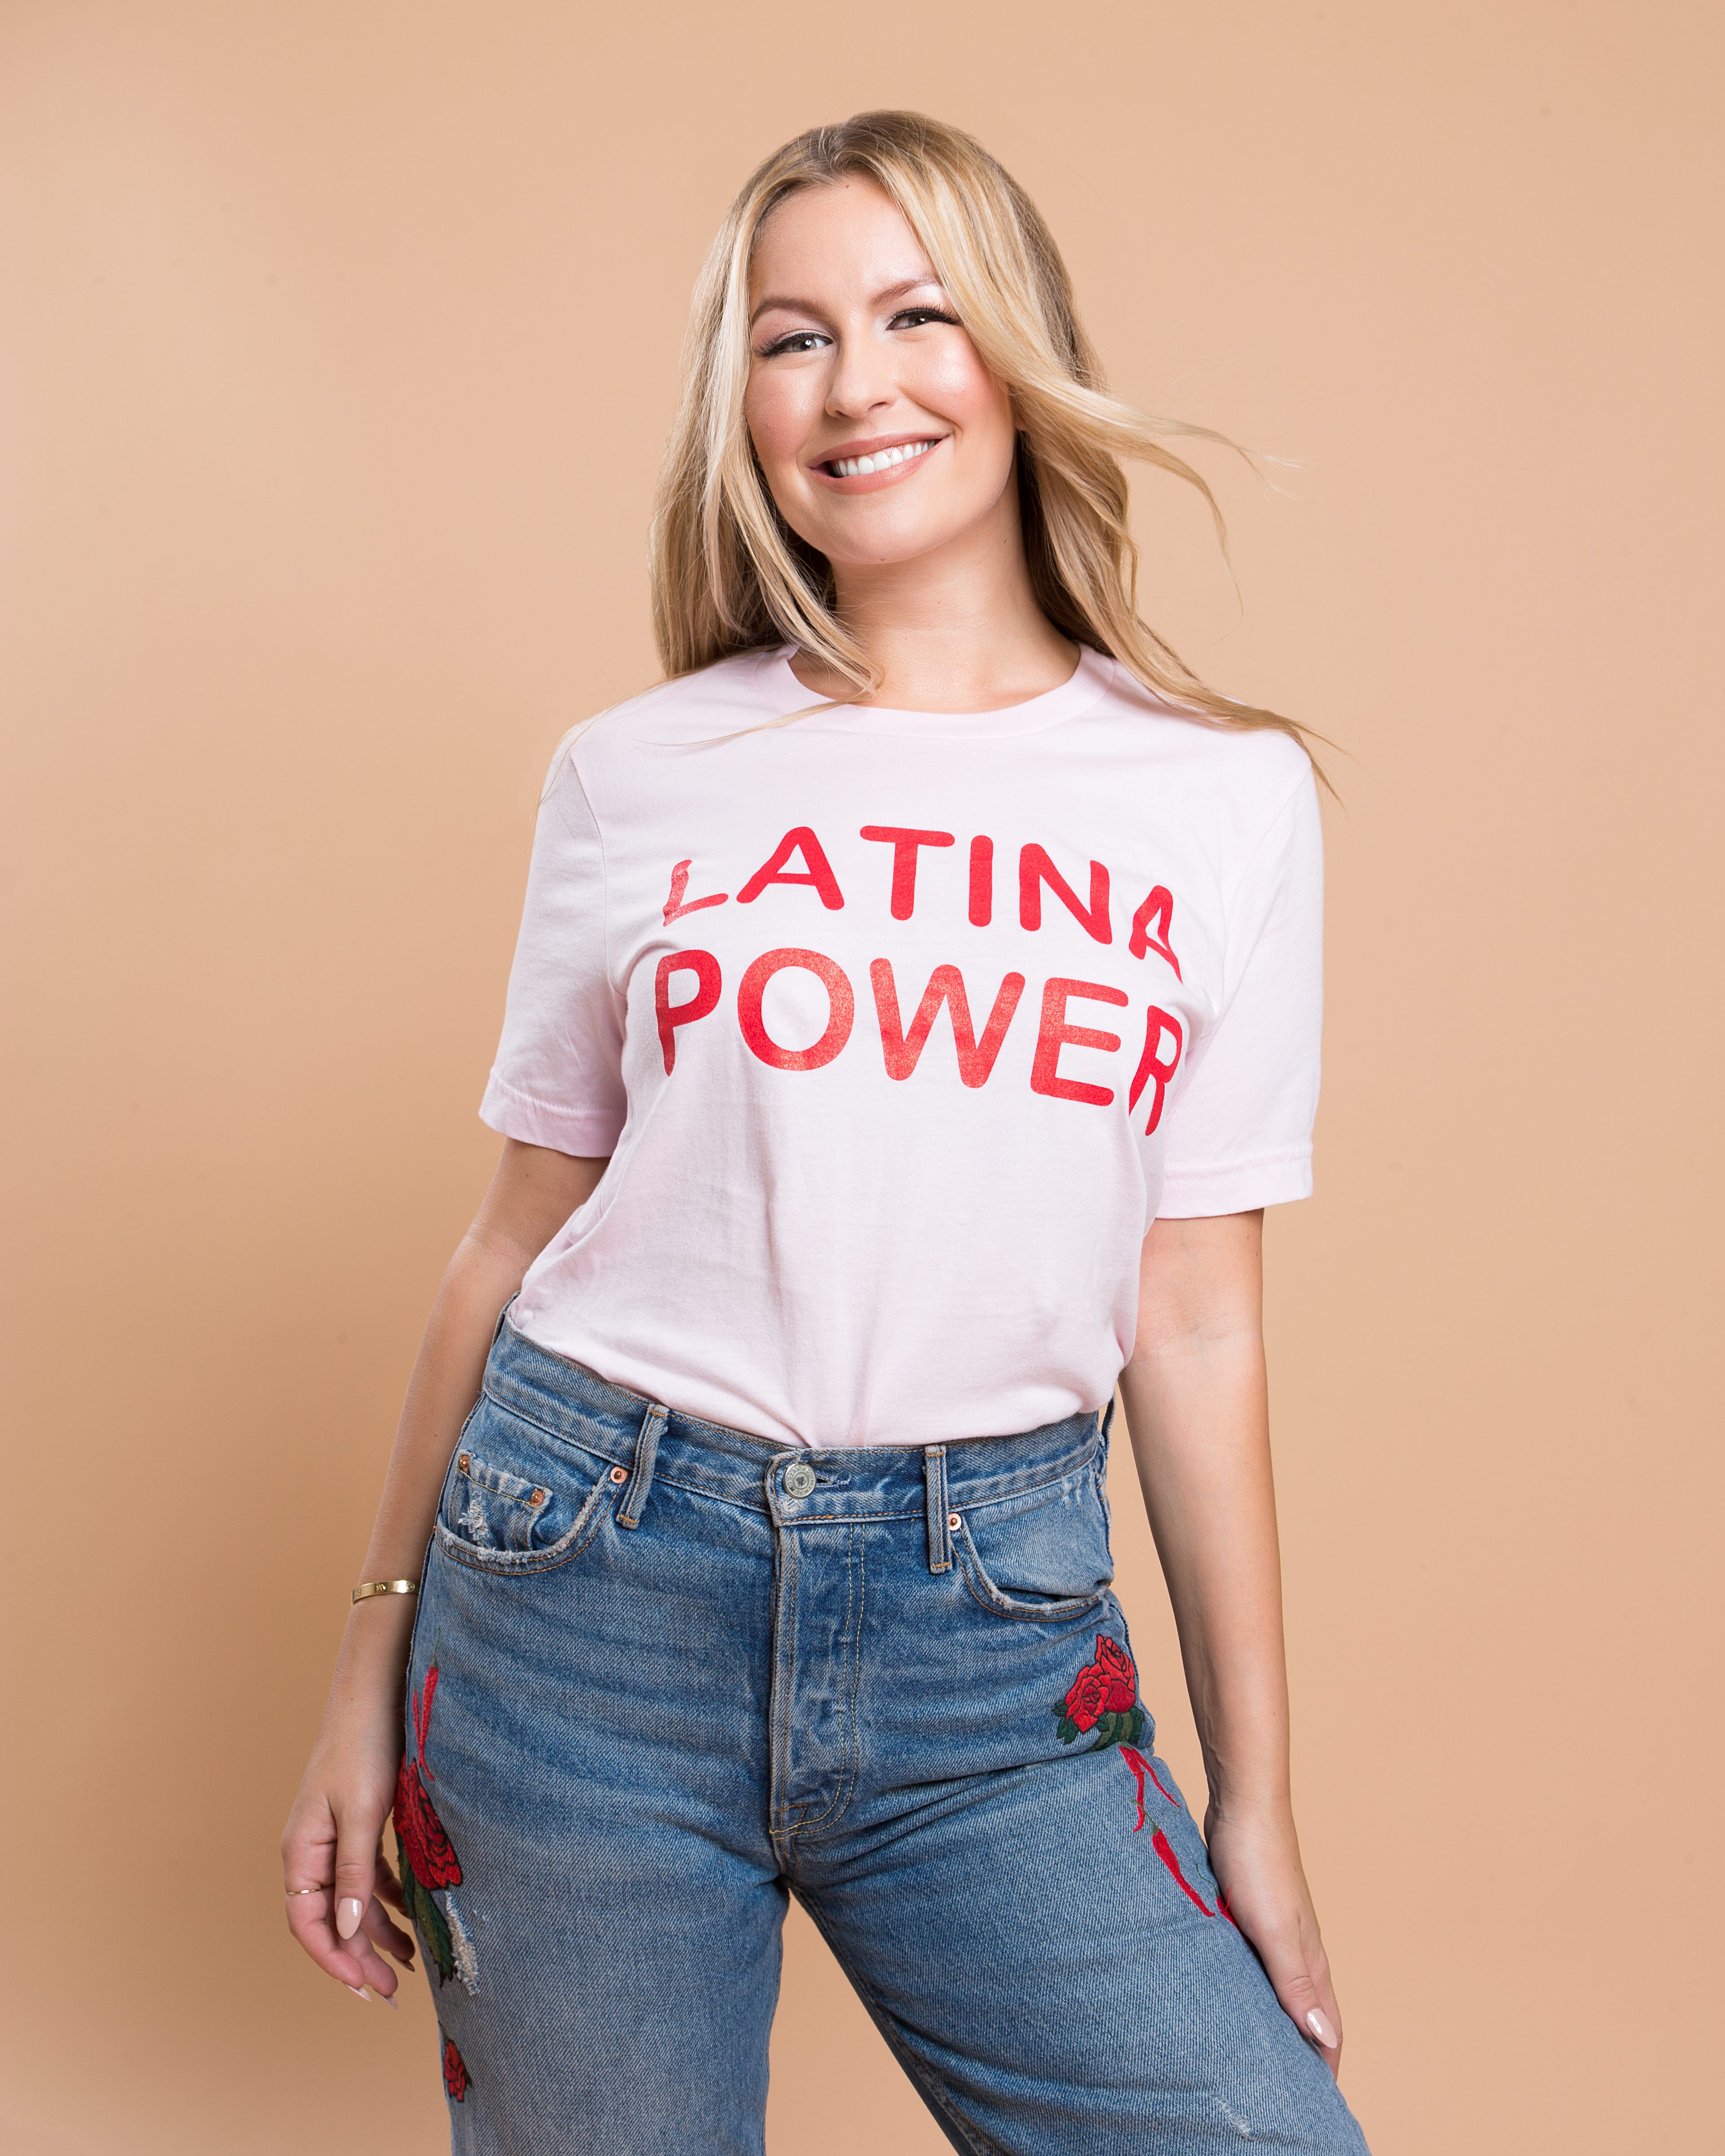 La Tina White Latina Woman Stereotype Cultural Identity Essay